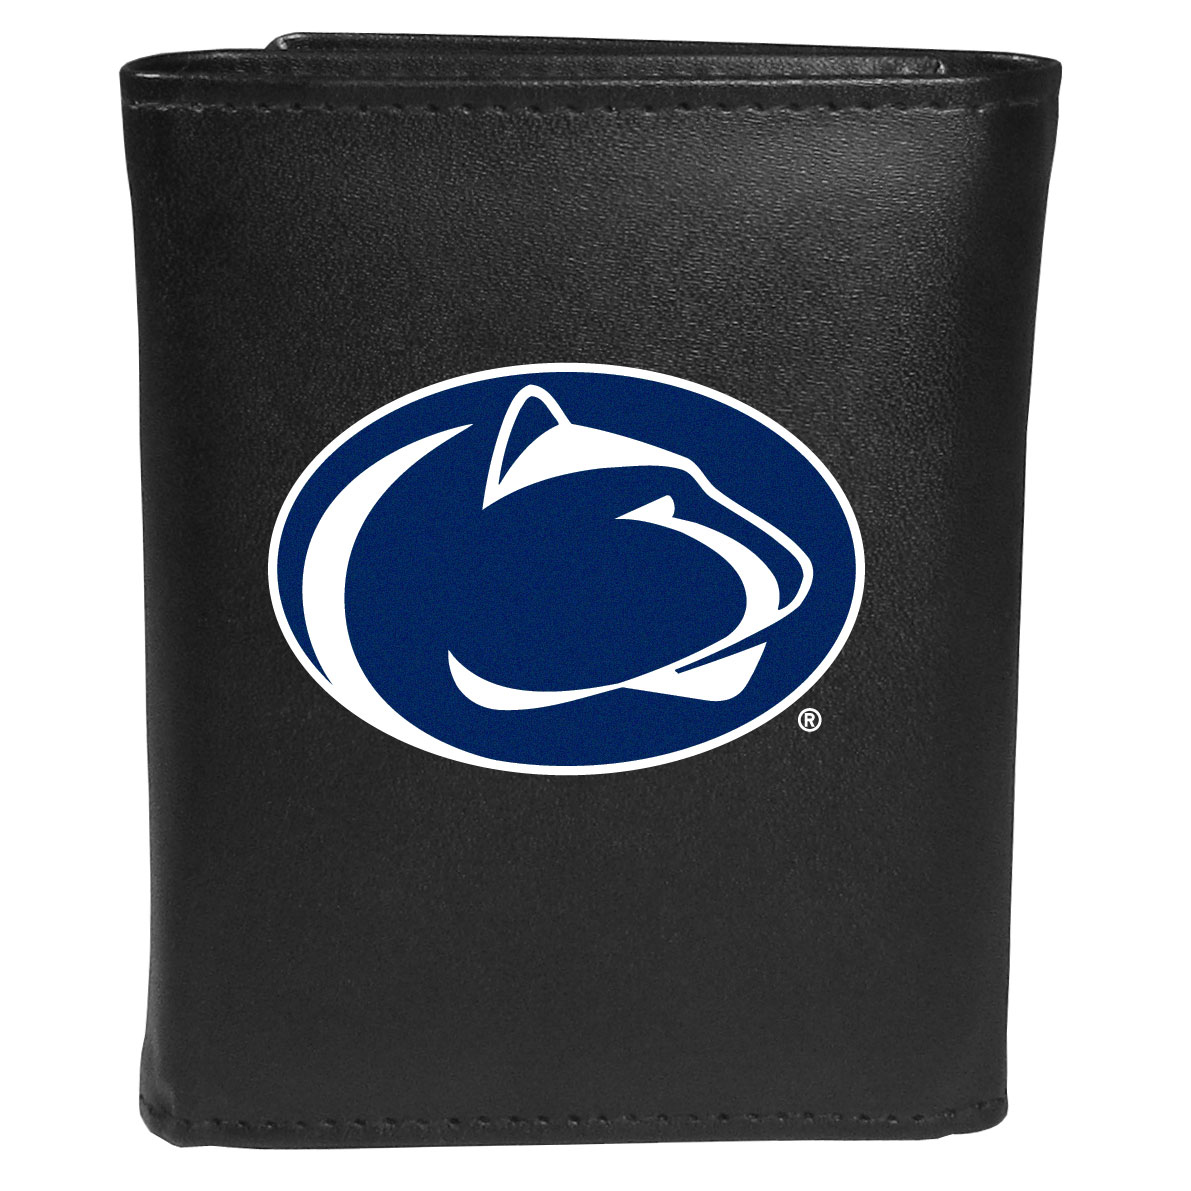 Penn St. Nittany Lions Leather Tri-fold Wallet, Large Logo - Our classic fine leather tri-fold wallet is meticulously crafted with genuine leather that will age beautifully so you will have a quality wallet for years to come. This is fan apparel at its finest. The wallet is packed with organizational  features; lots of credit card slots, large billfold pocket, and a window ID slot. The front of the wallet features an extra large Penn St. Nittany Lions printed logo.